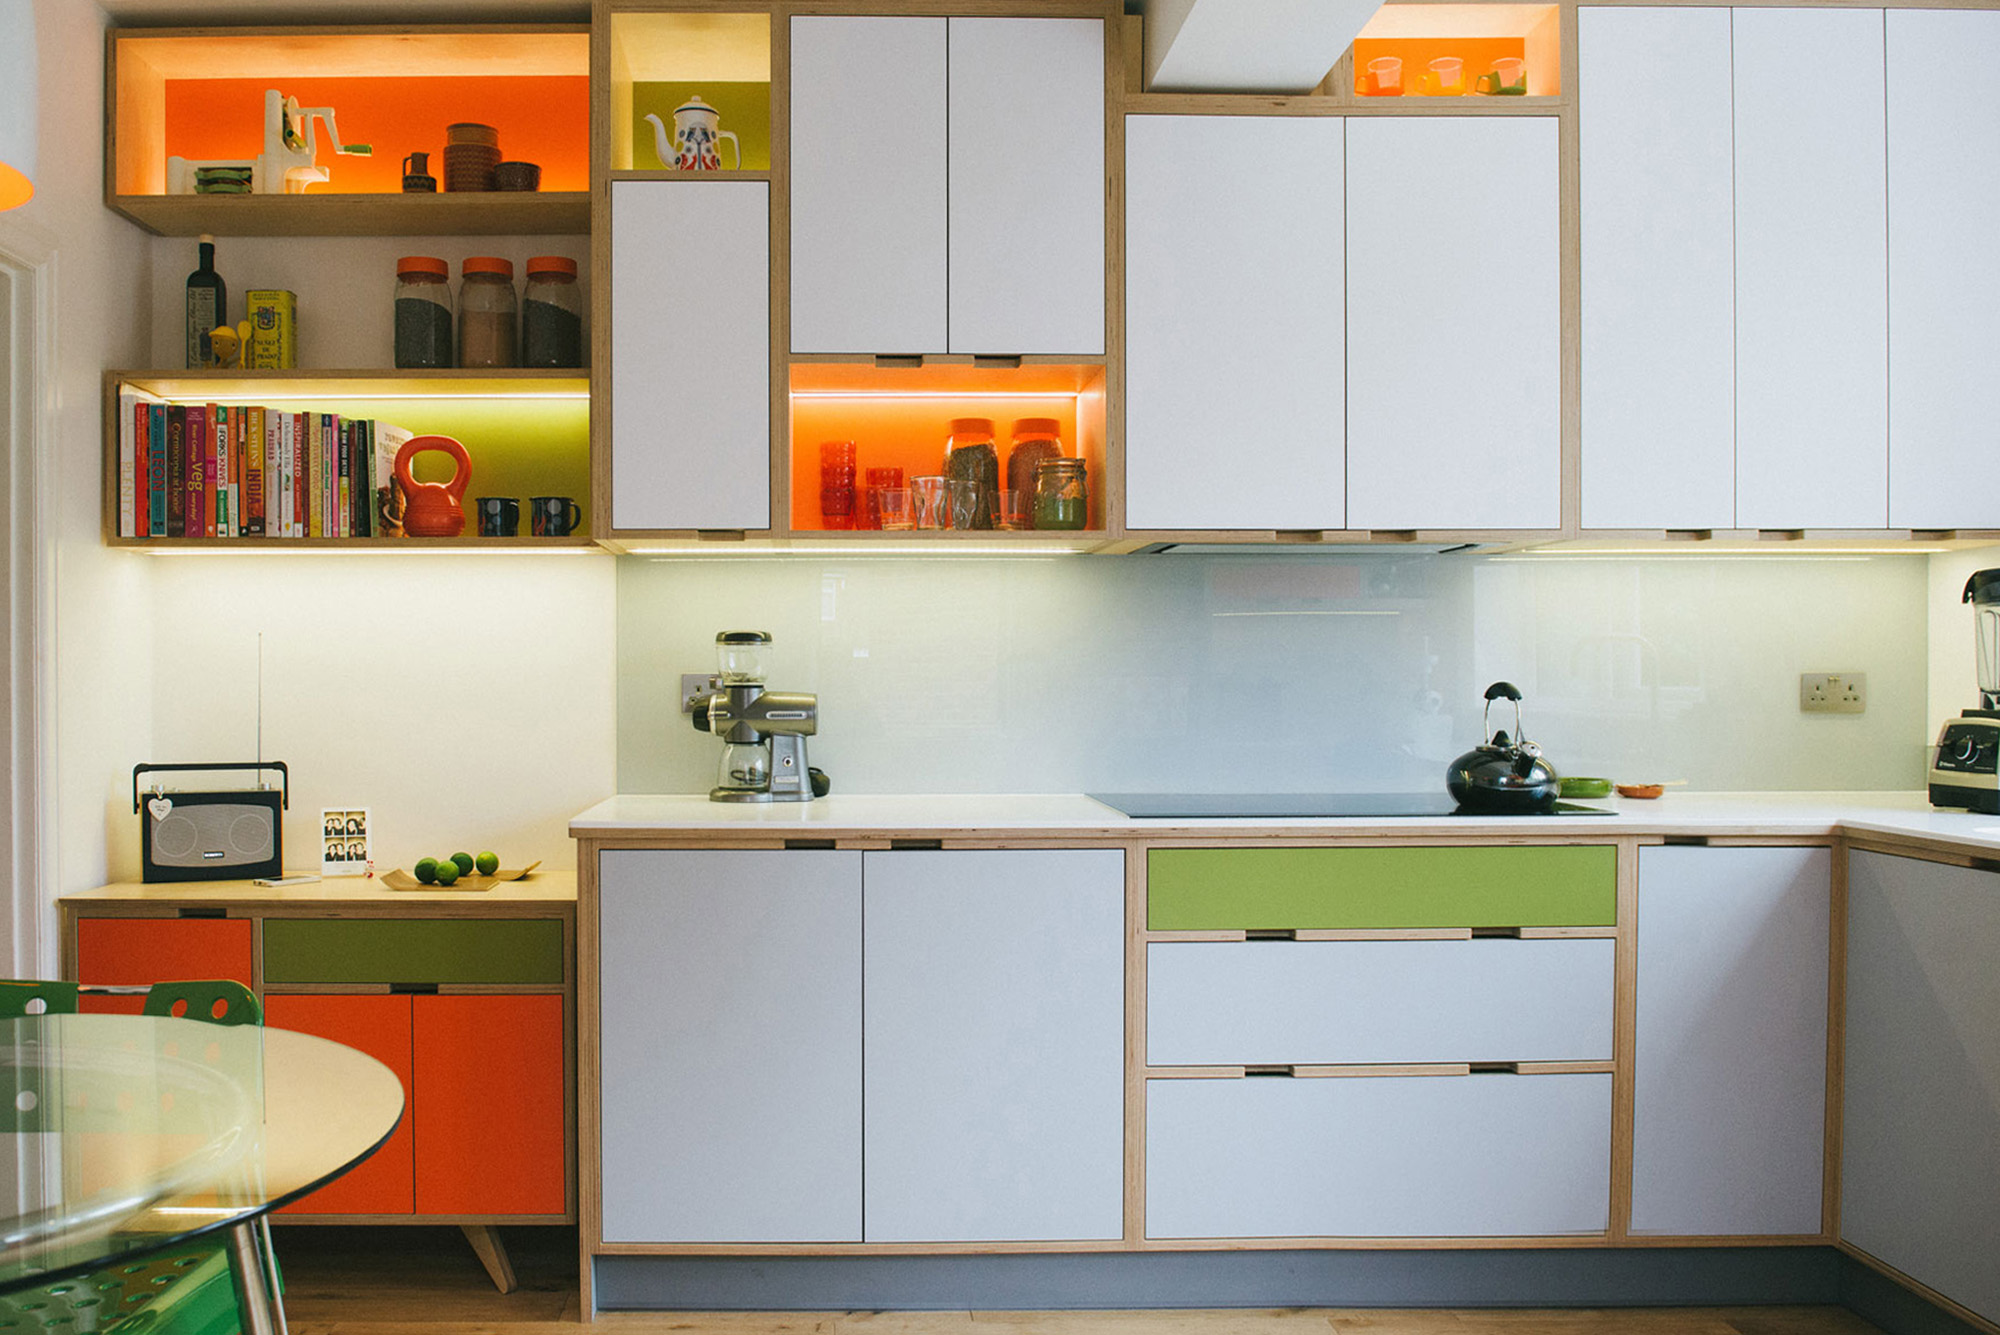 Plywood kitchens made in the UK